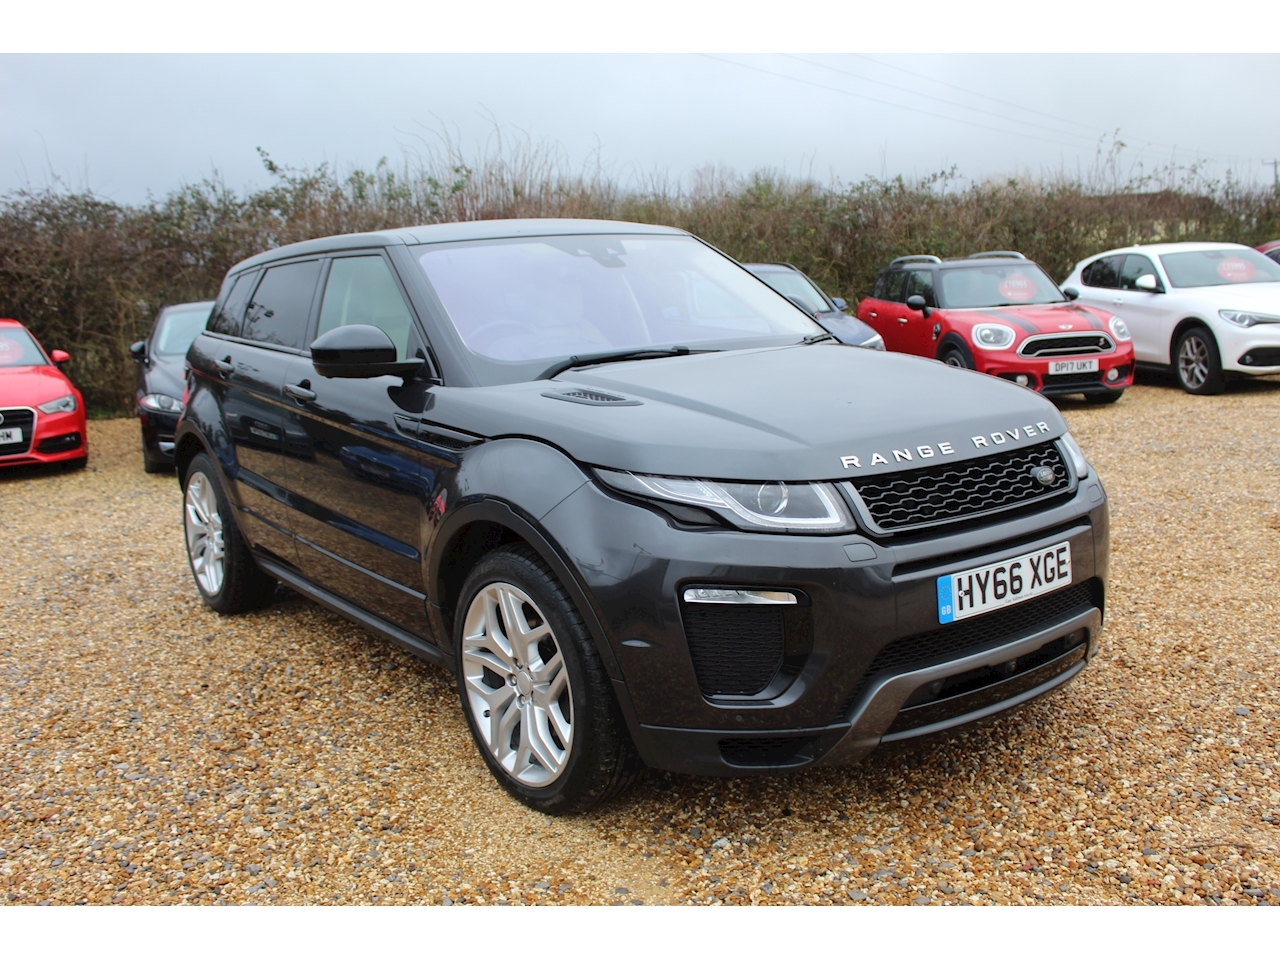 Land Rover 2.0 TD4 HSE Dynamic Lux SUV 5dr Diesel Auto 4WD (s/s) (180 ps)